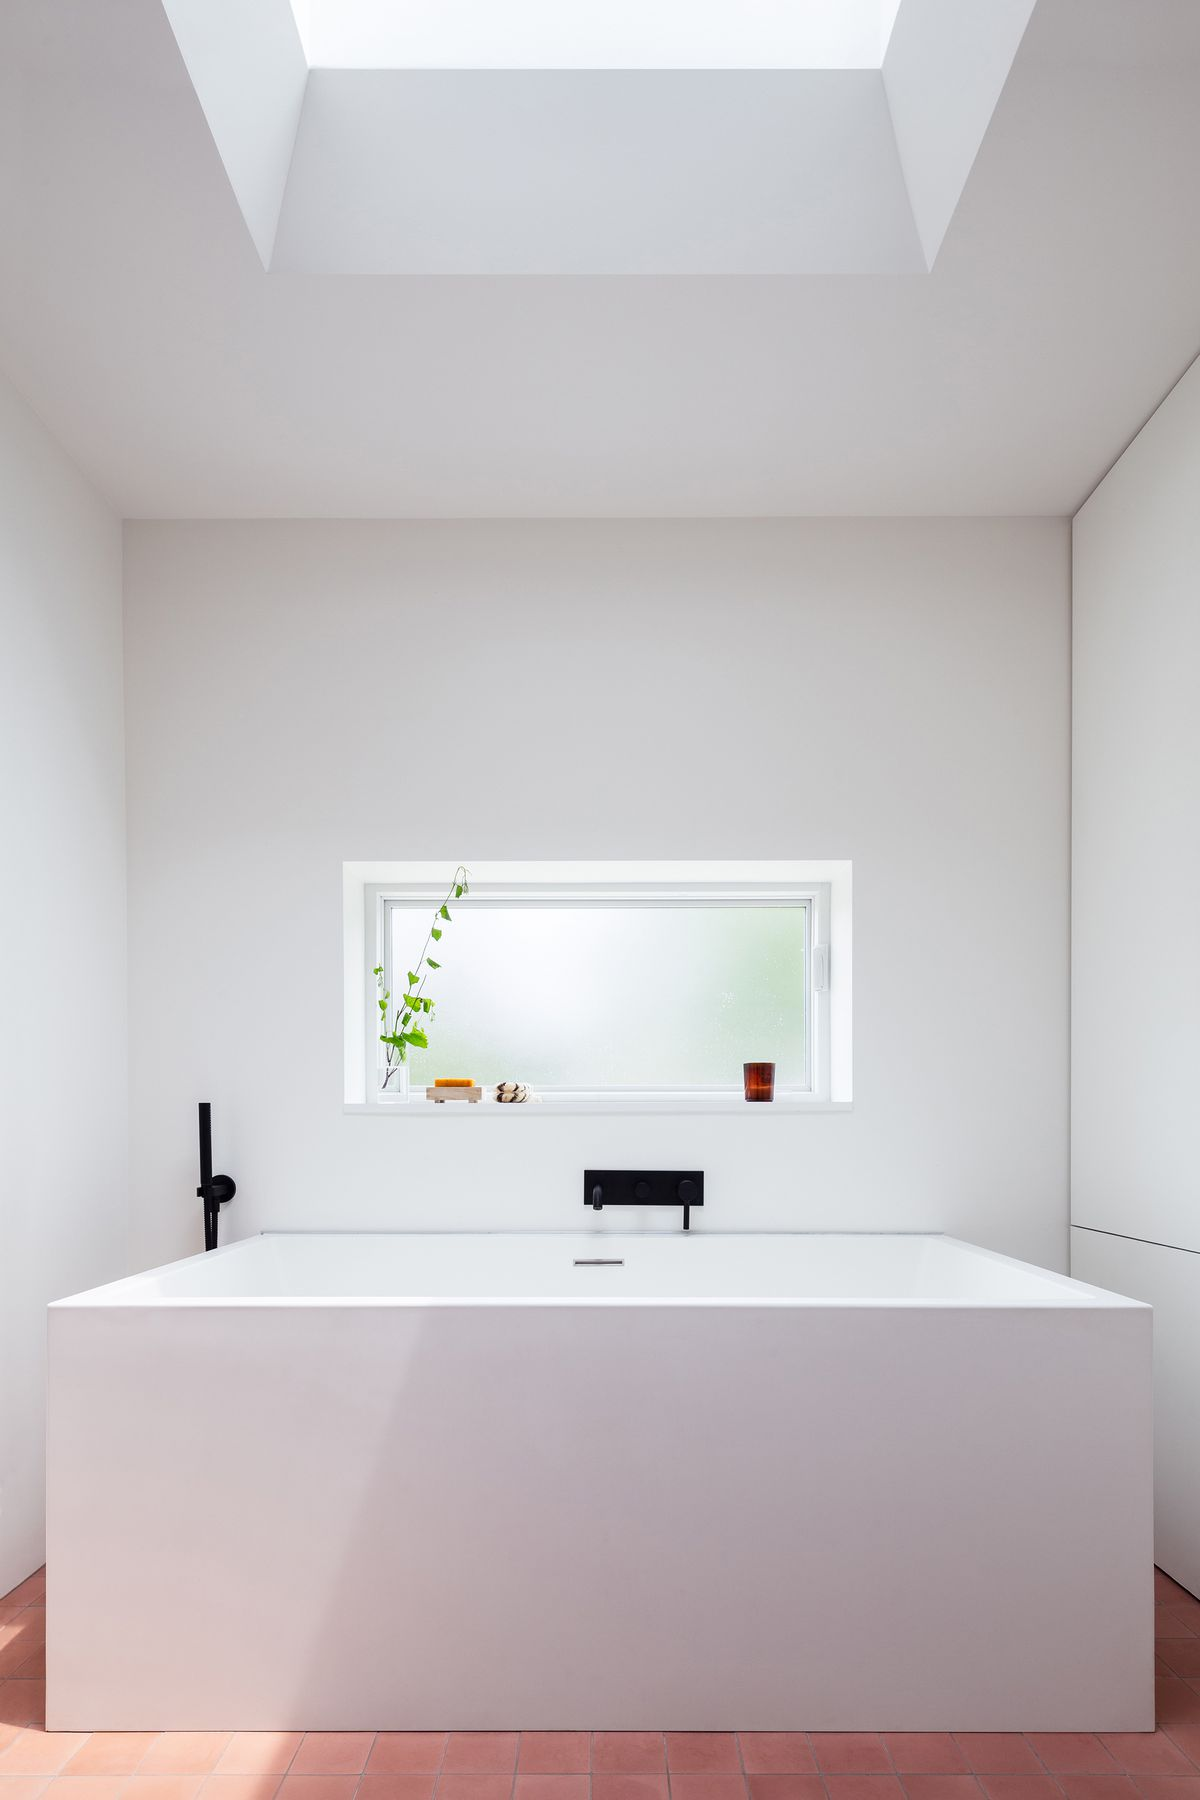 A white rectangular tub is surrounded by white walls and pink floors under a skylight.